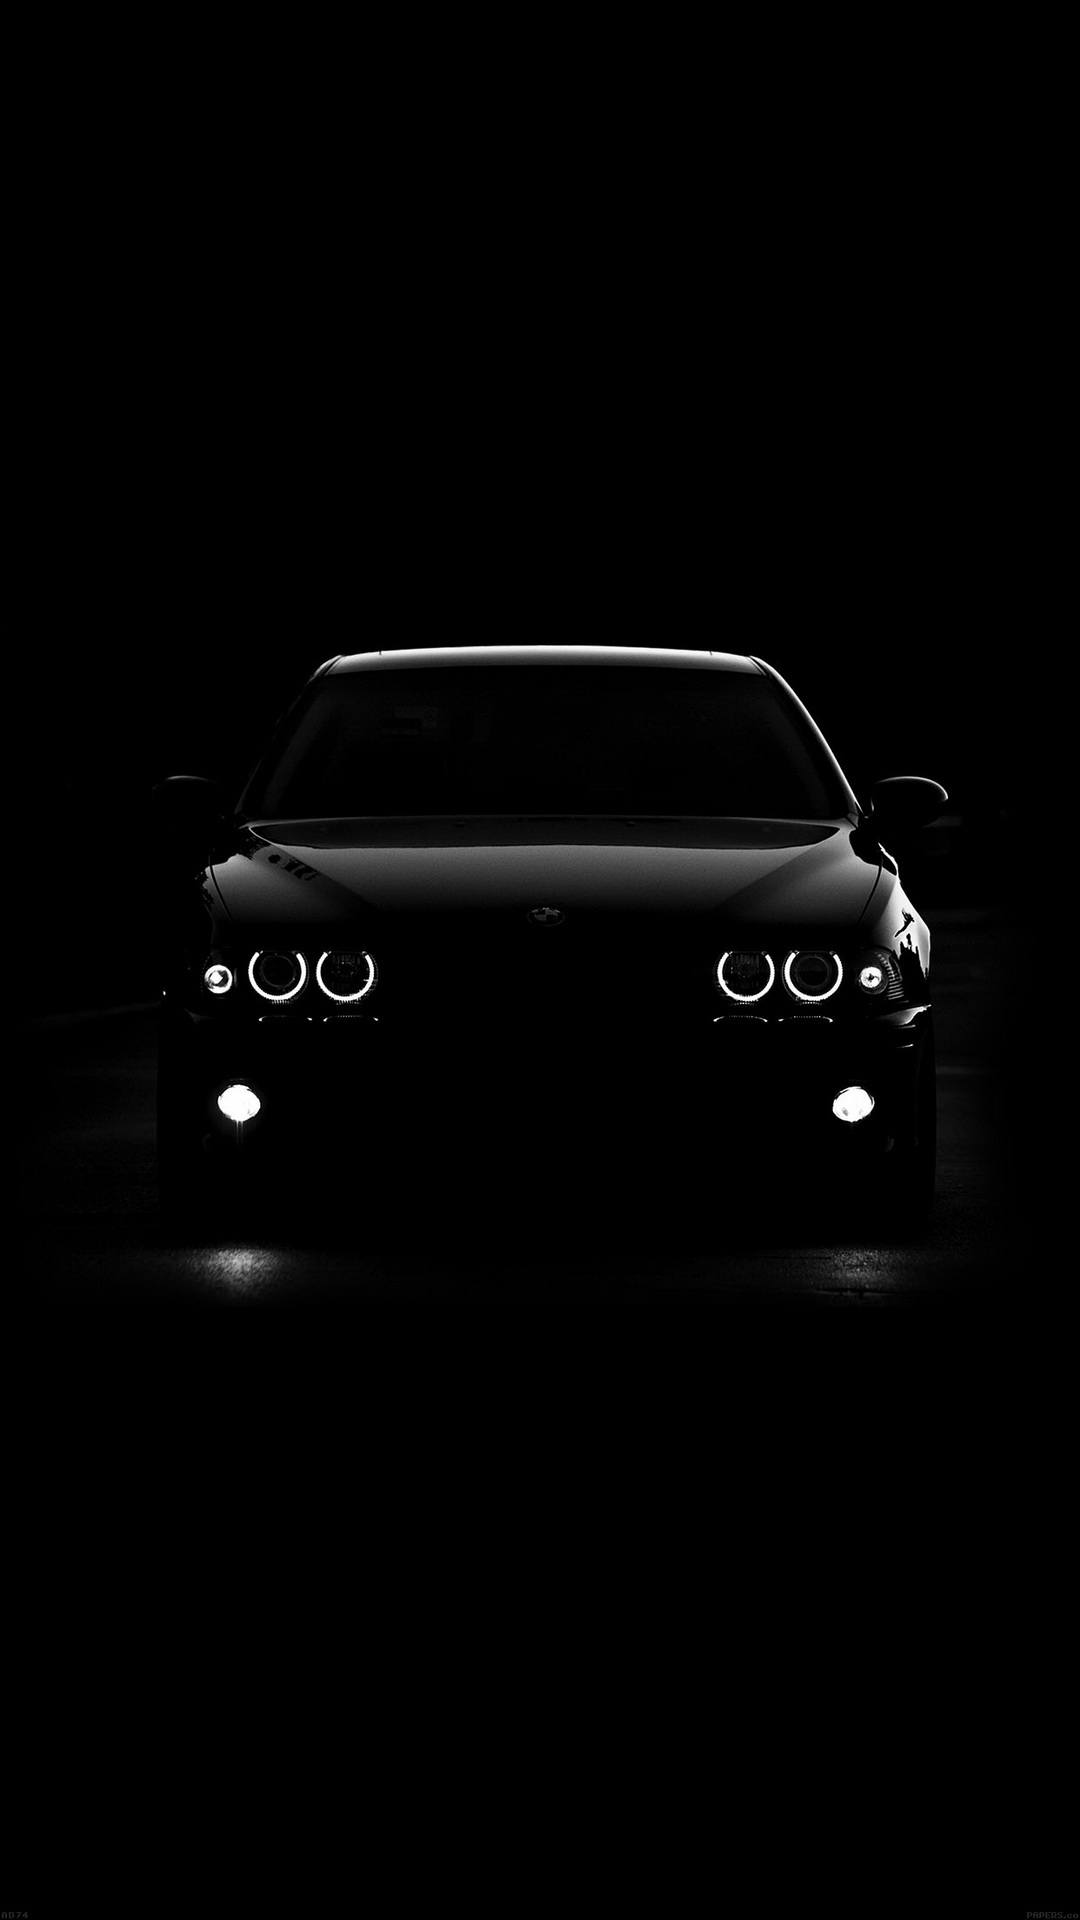 55 Hd Android Bmw Wallpapers On Wallpapersafari